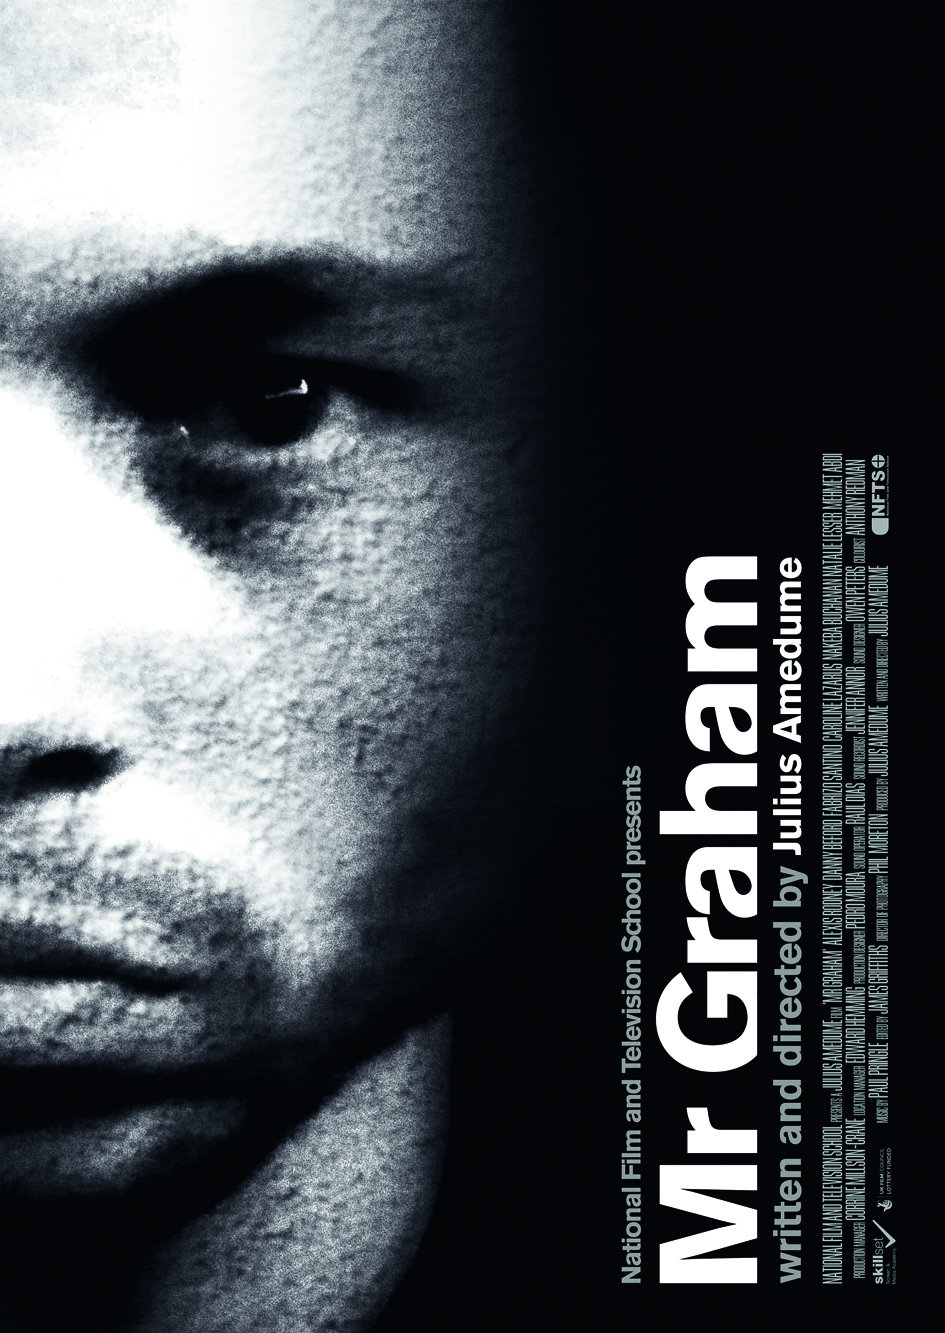 image Mr. Graham Watch Full Movie Free Online